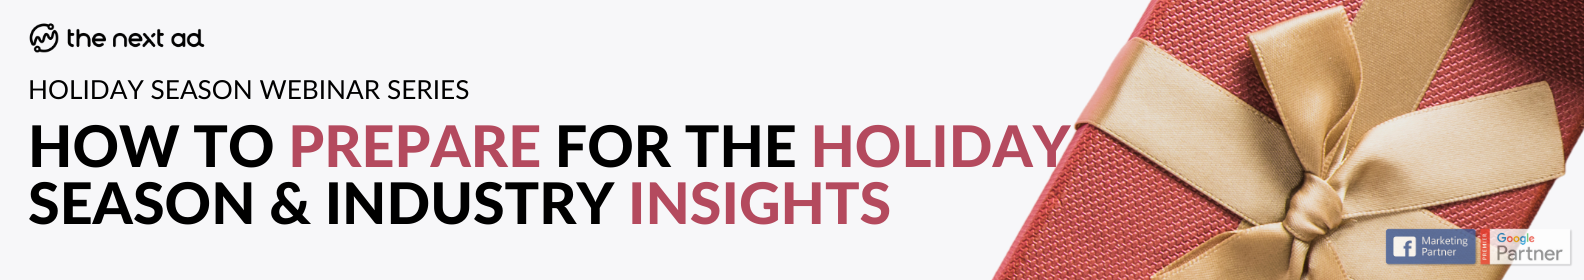 Webinar Recording: How to Prepare for the Holiday Season & Industry Insights